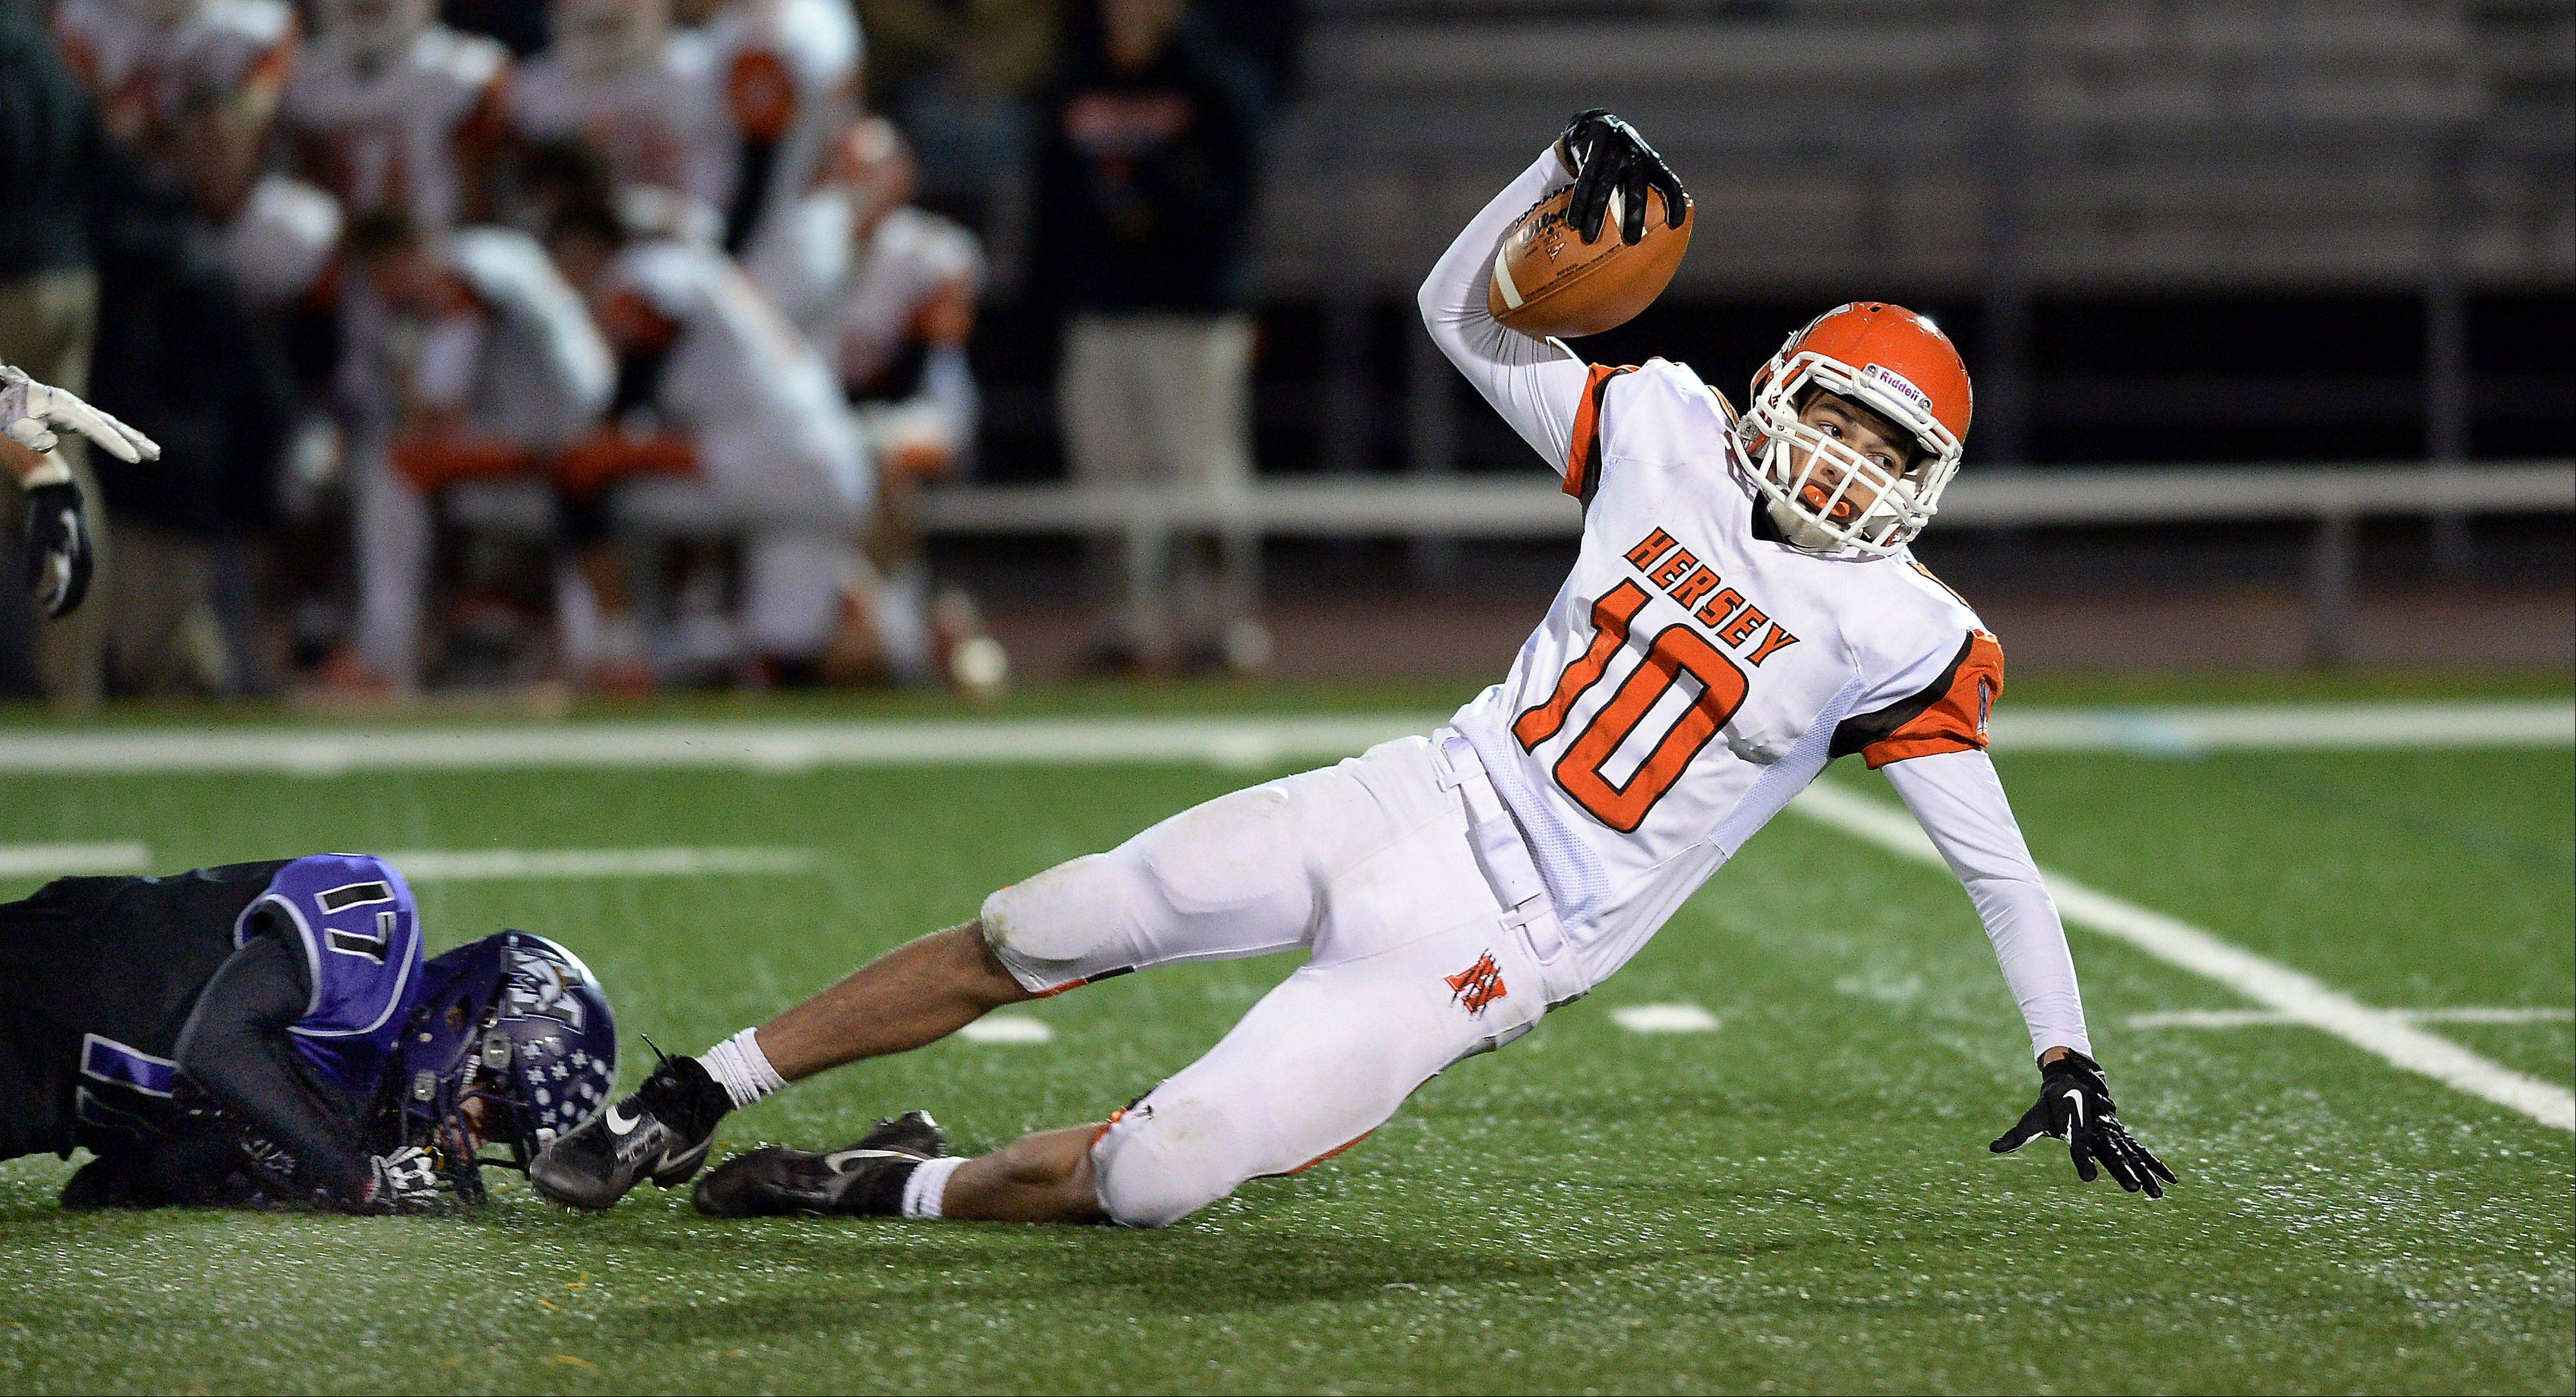 Hersey�s Eddie Miklasz has made a habit of stretching defenses this season. Here Rolling Meadows� Kevin Adair makes a shoestring tackle in a matchup of Mid-Suburban East co-champs.